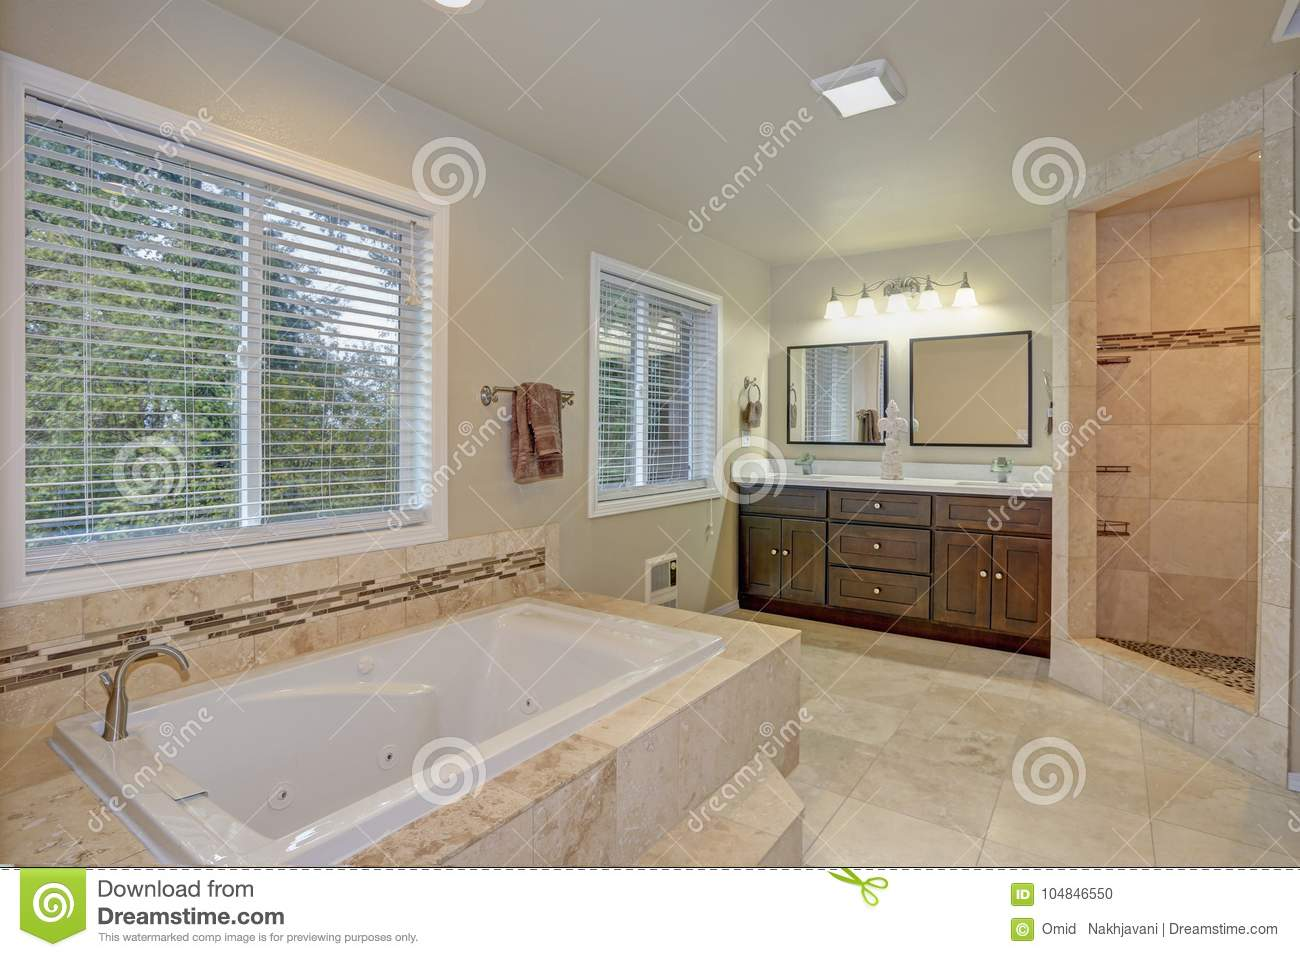 Master Bathroom Design With Luxury Tub And Walk-in Shower Stock ...